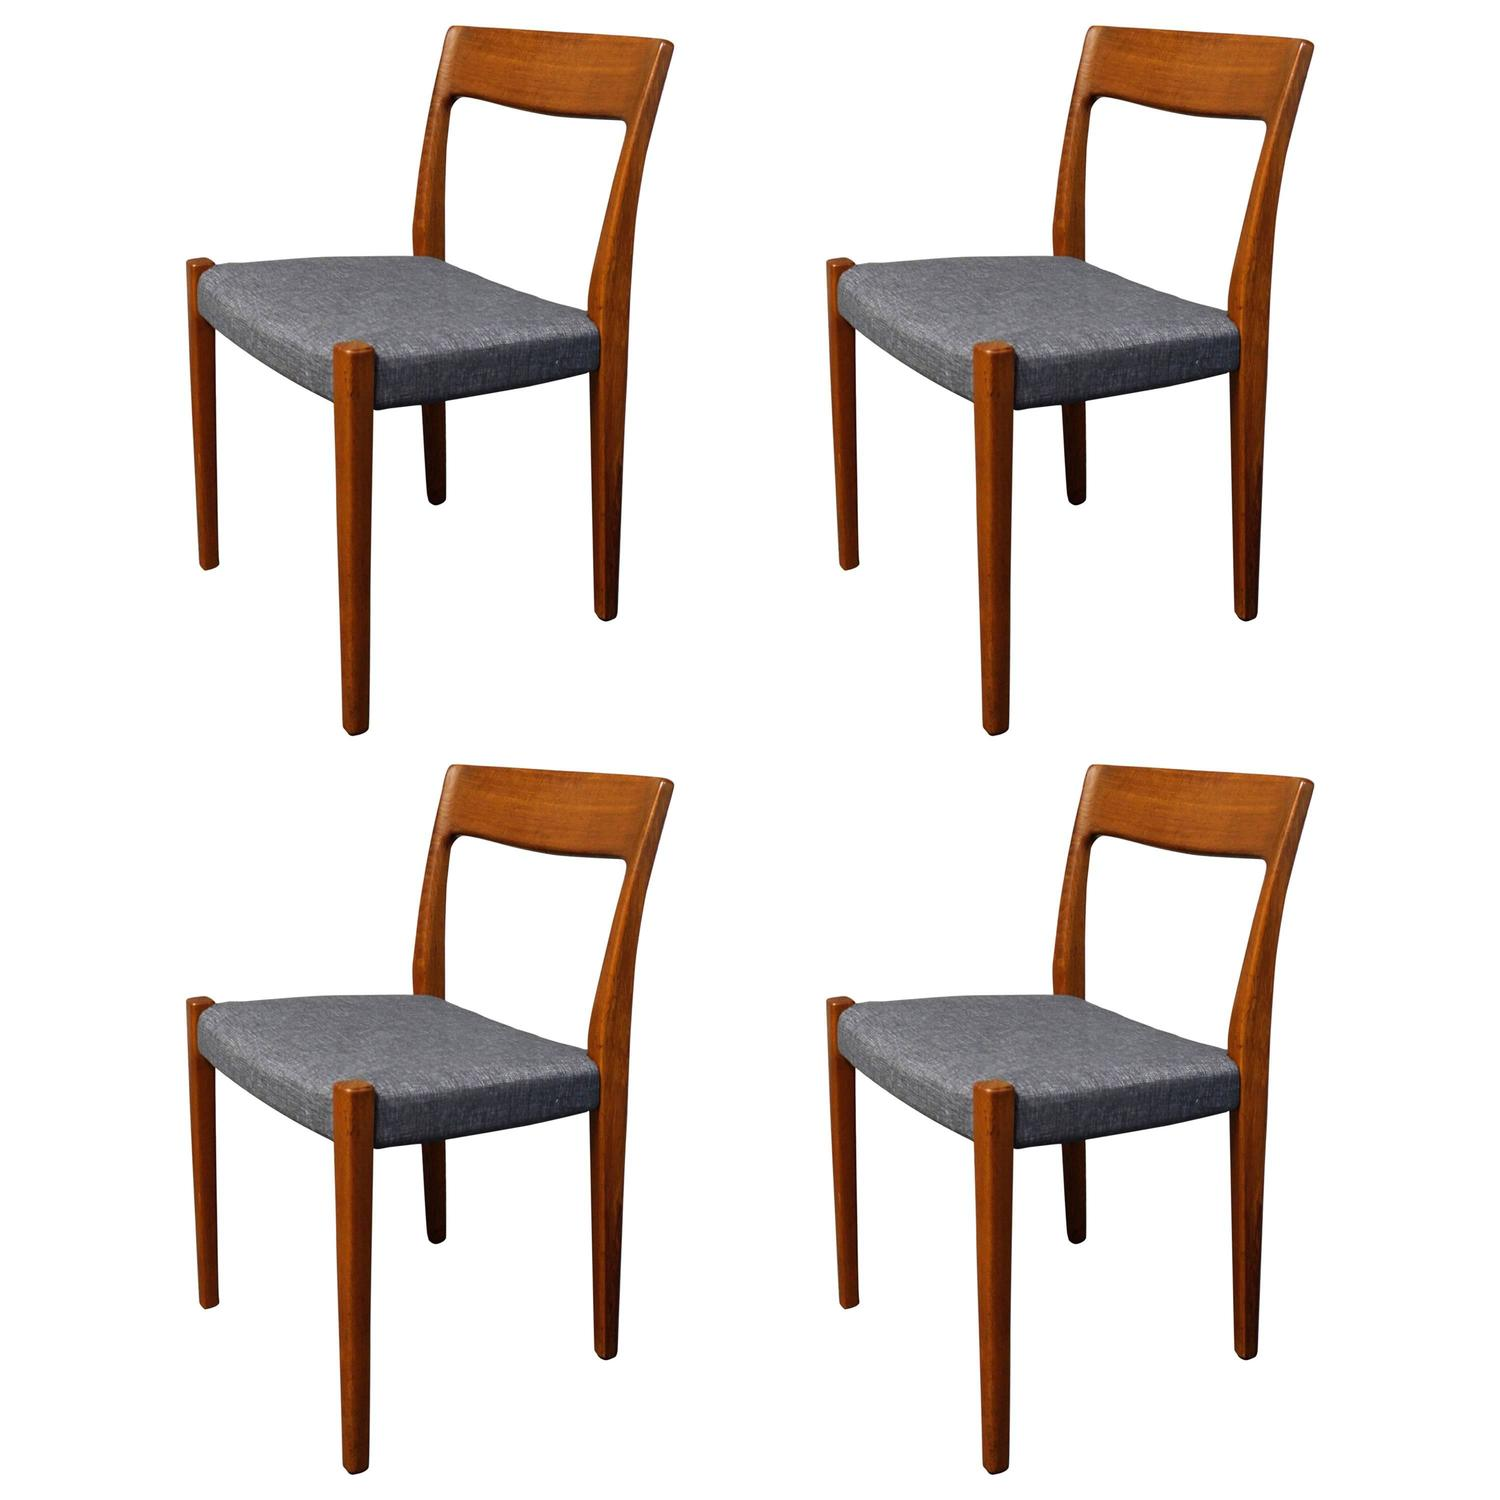 Four svegards markaryd teak dining chairs for sale at stdibs